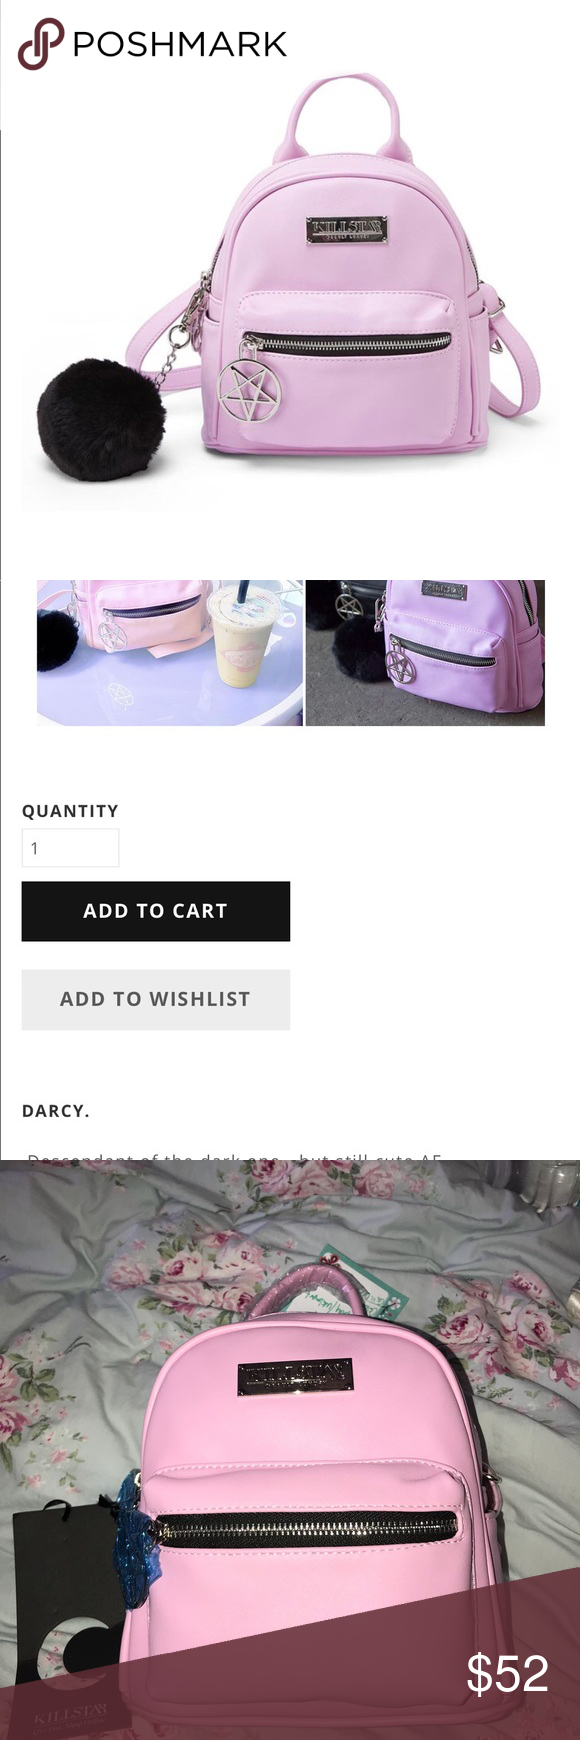 ea086aa7c Killstar Mini Darcy Backpack 💖 new! never used!💖 it's a lavender pinky  color killstar Bags Backpacks